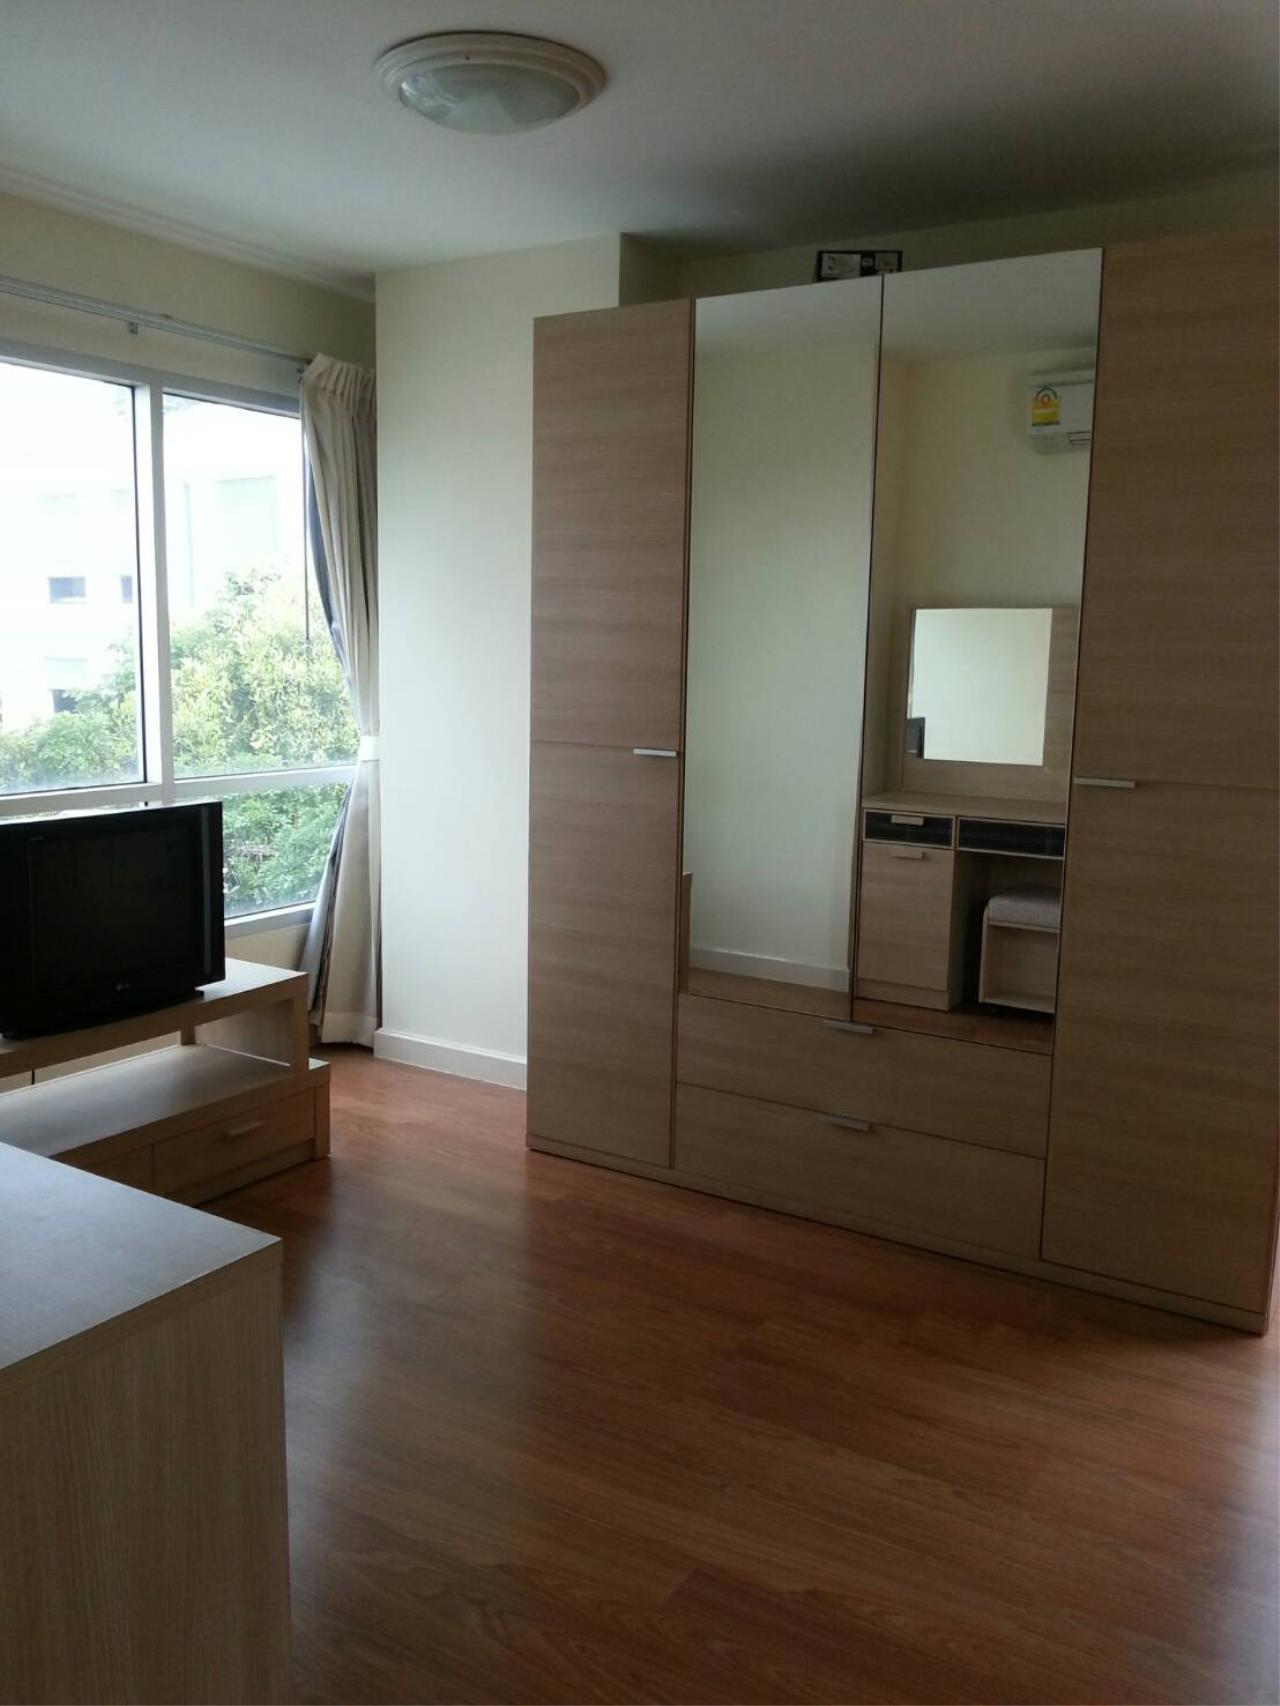 RE/MAX All Star Realty Agency's Condo One Thong Lor sale/rent (Sukhumvit Soi 40) 8